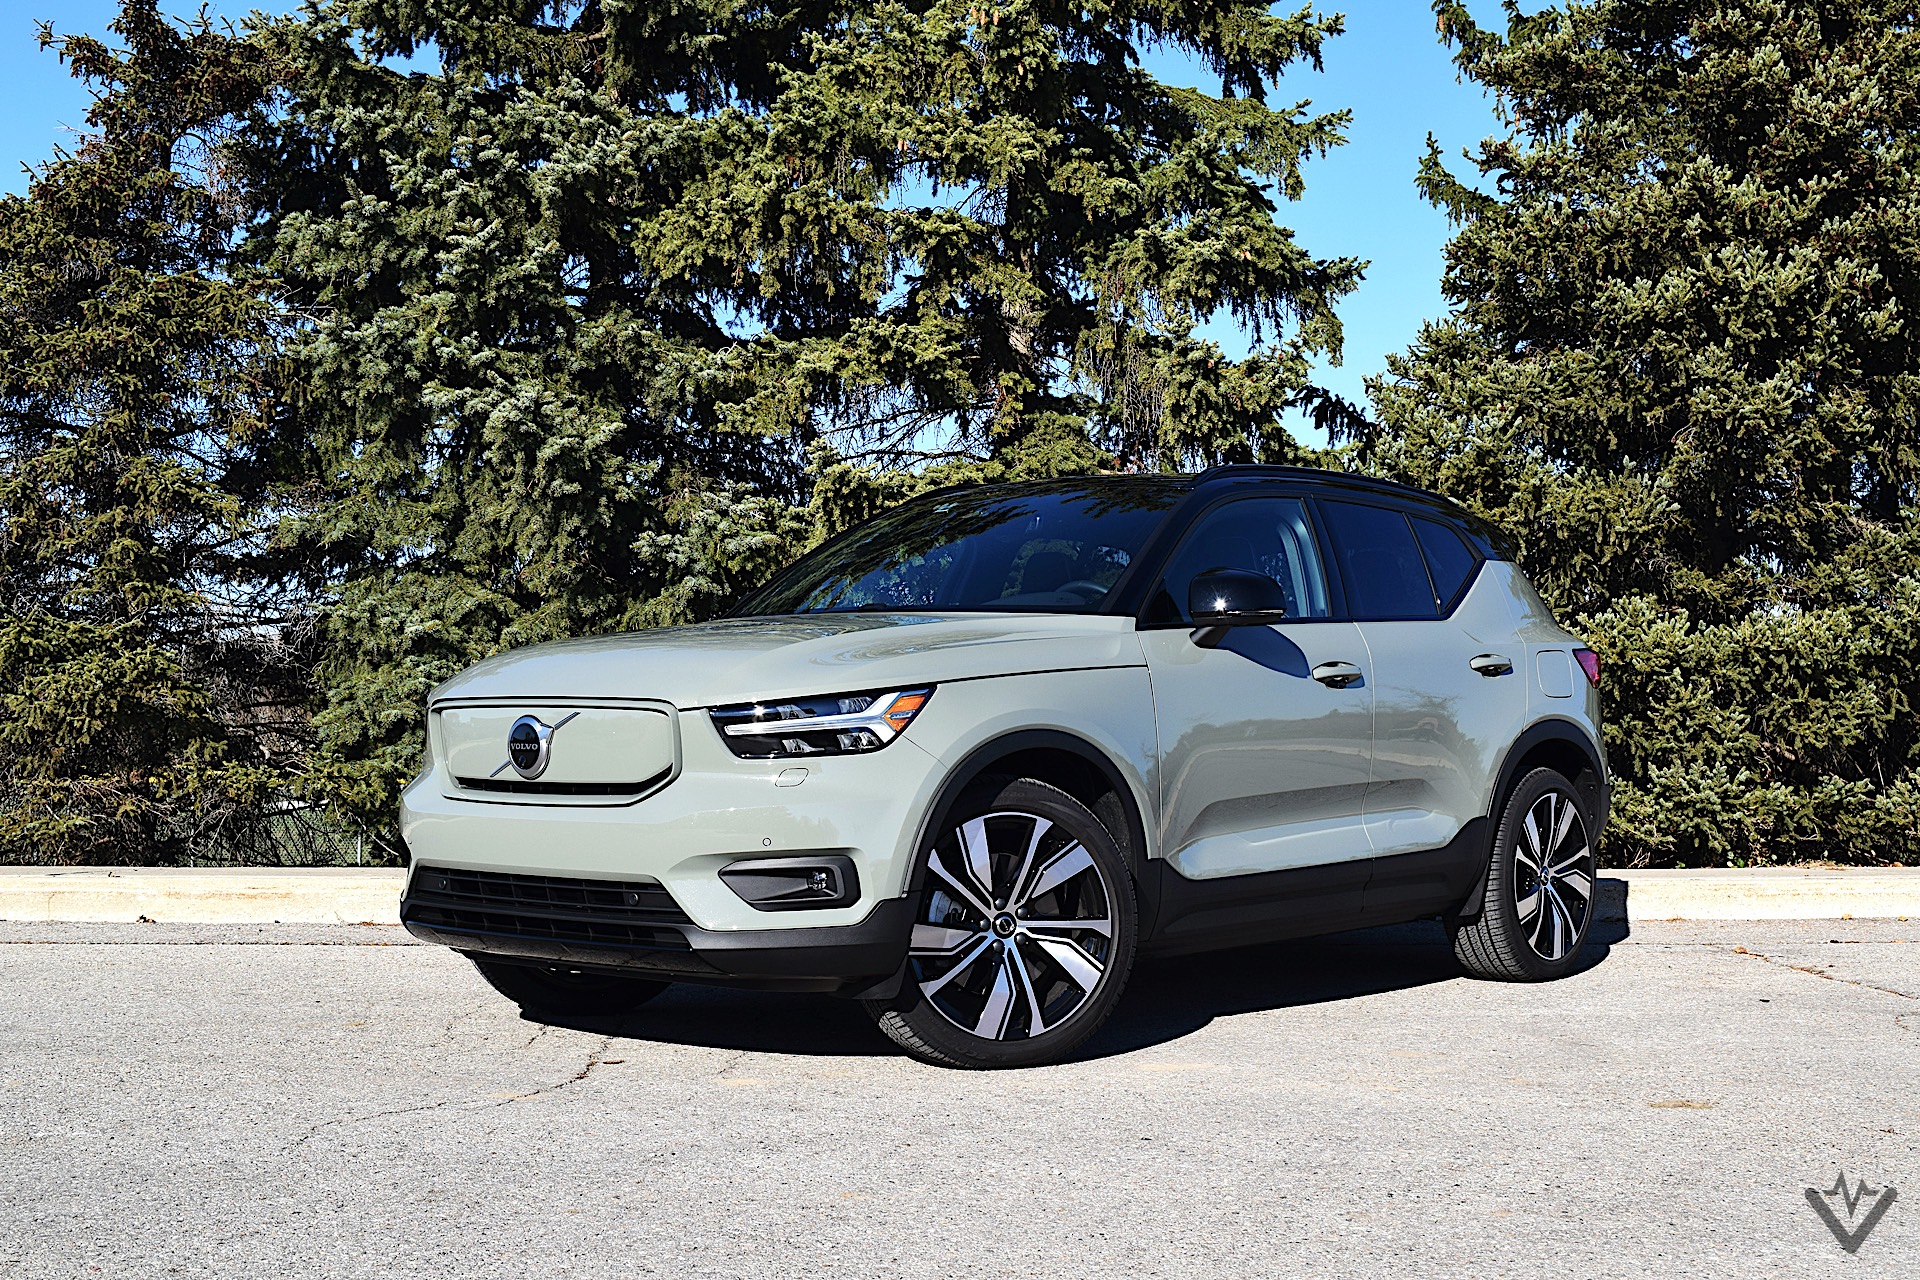 2021 Volvo XC40 Recharge Review Exterior Front 3Q Angle 1